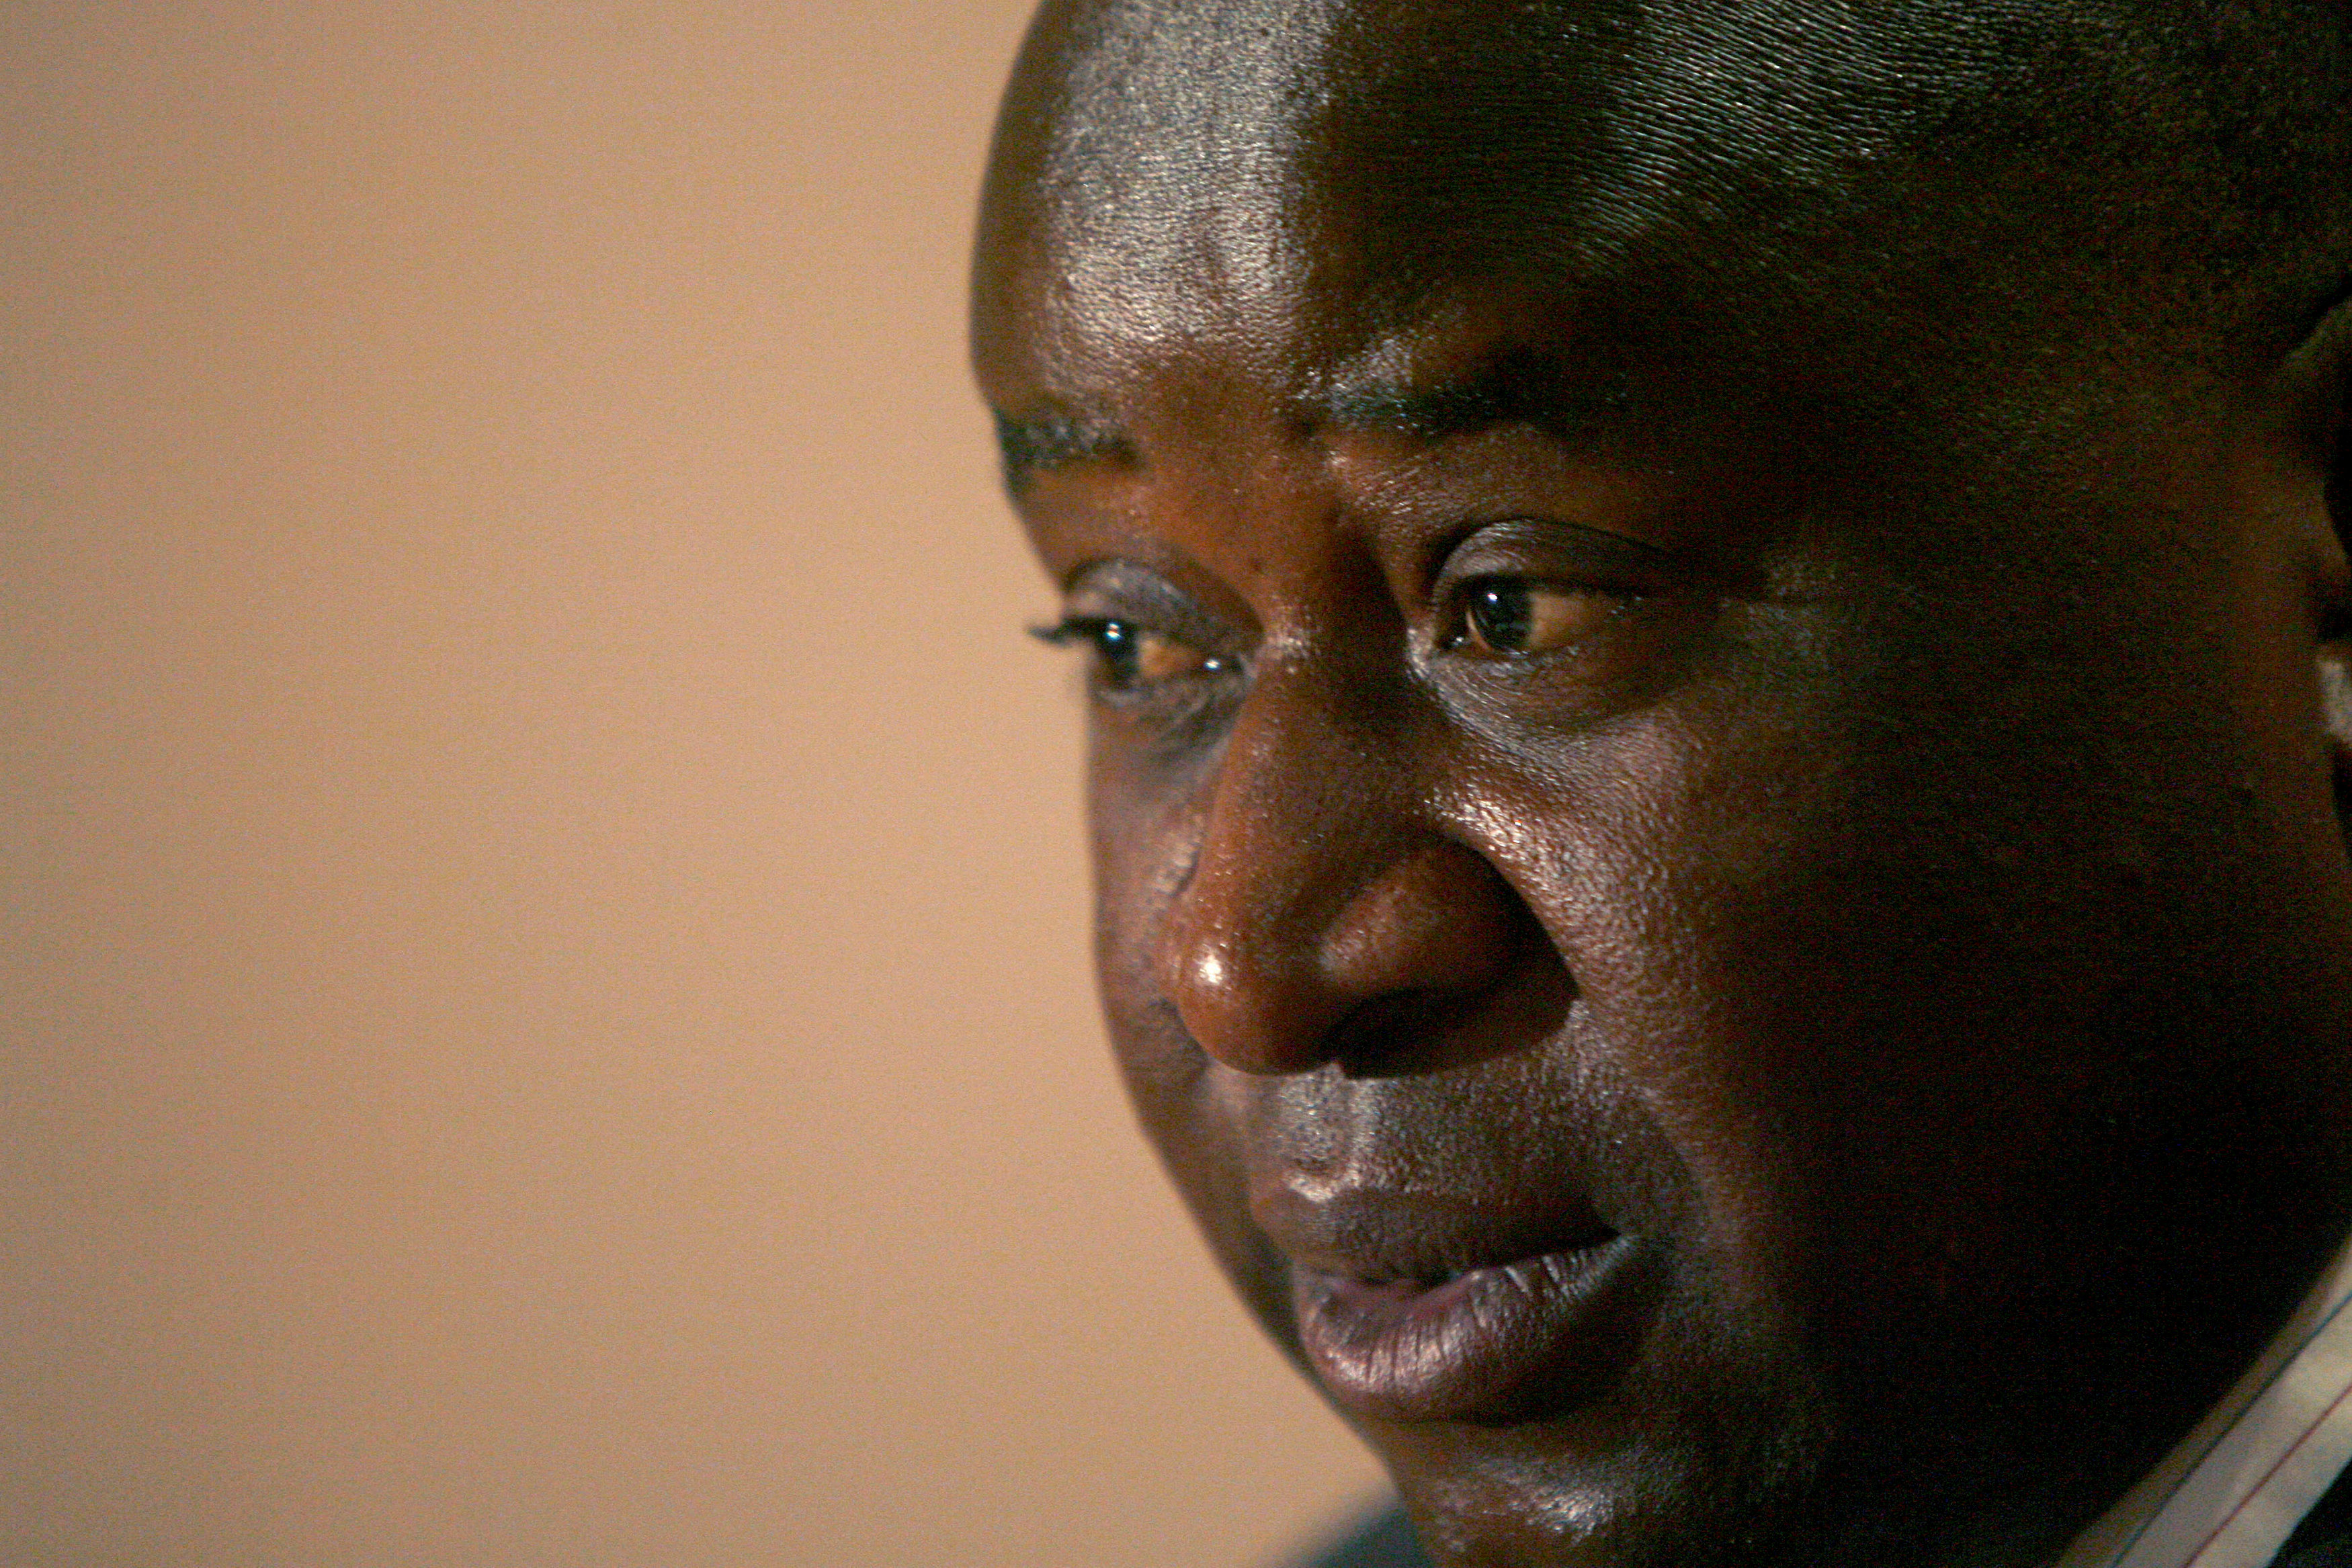 Finance Minister Tito Mboweni talks tough on SOE lending and slashes public sector wage bill.